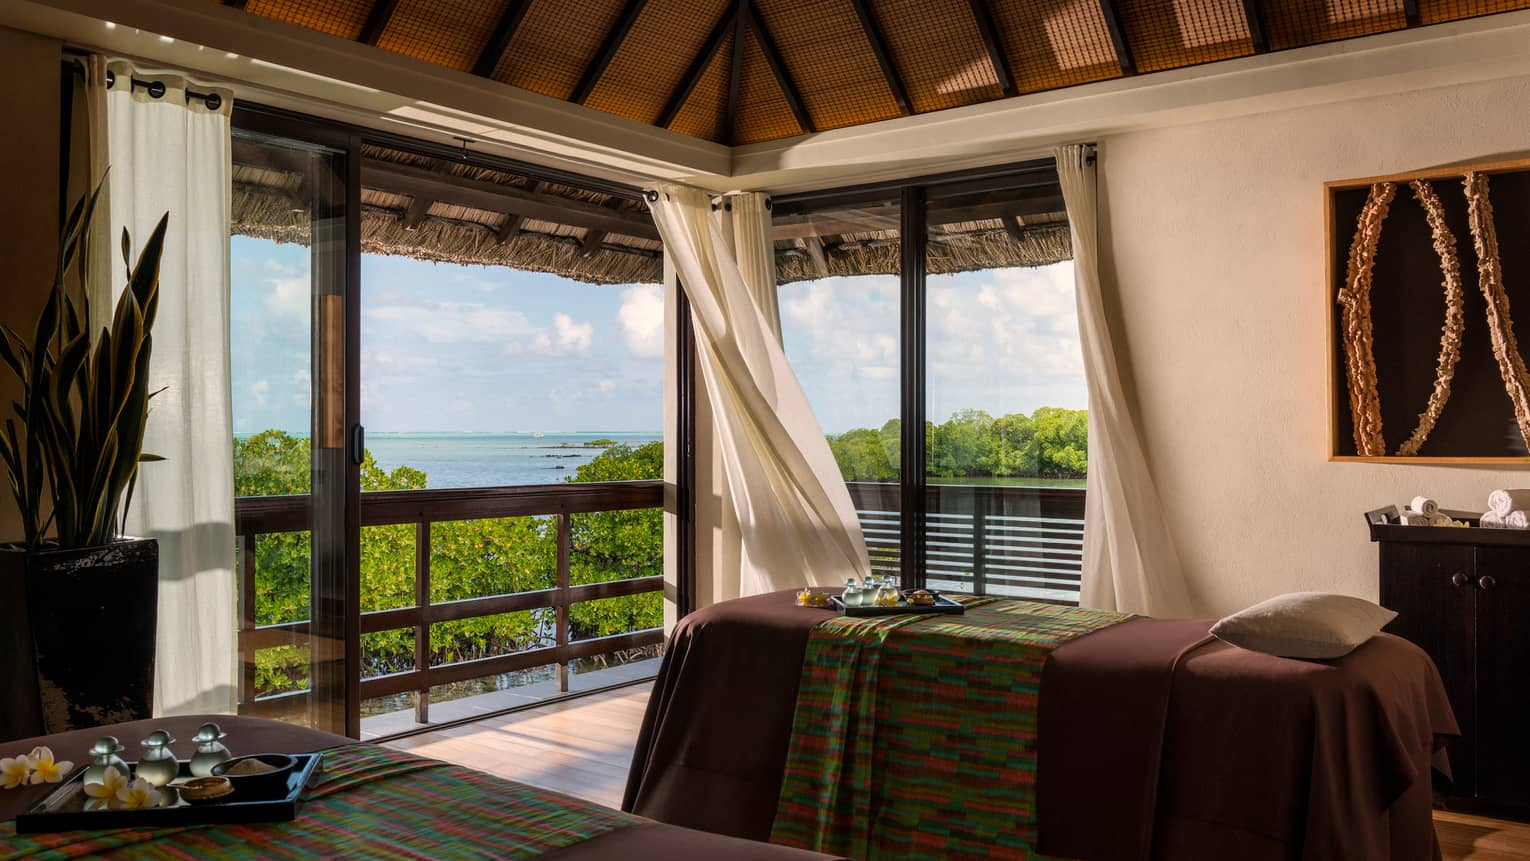 Two massage tables with colourful textiles by corner windows with white curtains, ocean view